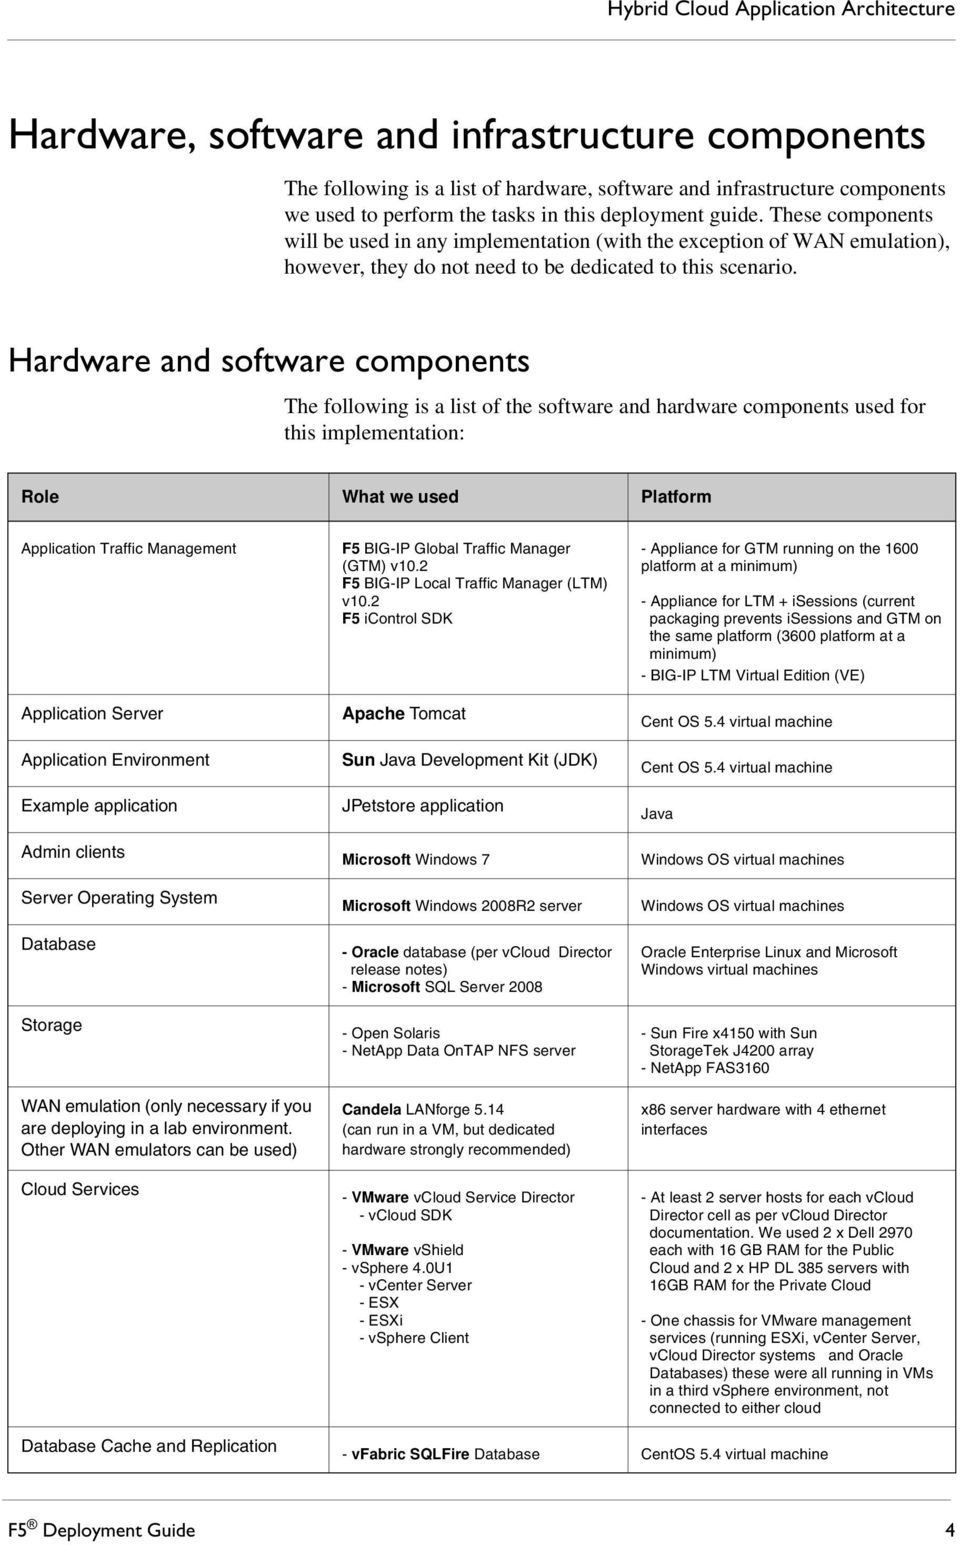 Hardware and software components The following is a list of the software and hardware components used for this implementation: Role What we used Platform Application Traffic Management Application